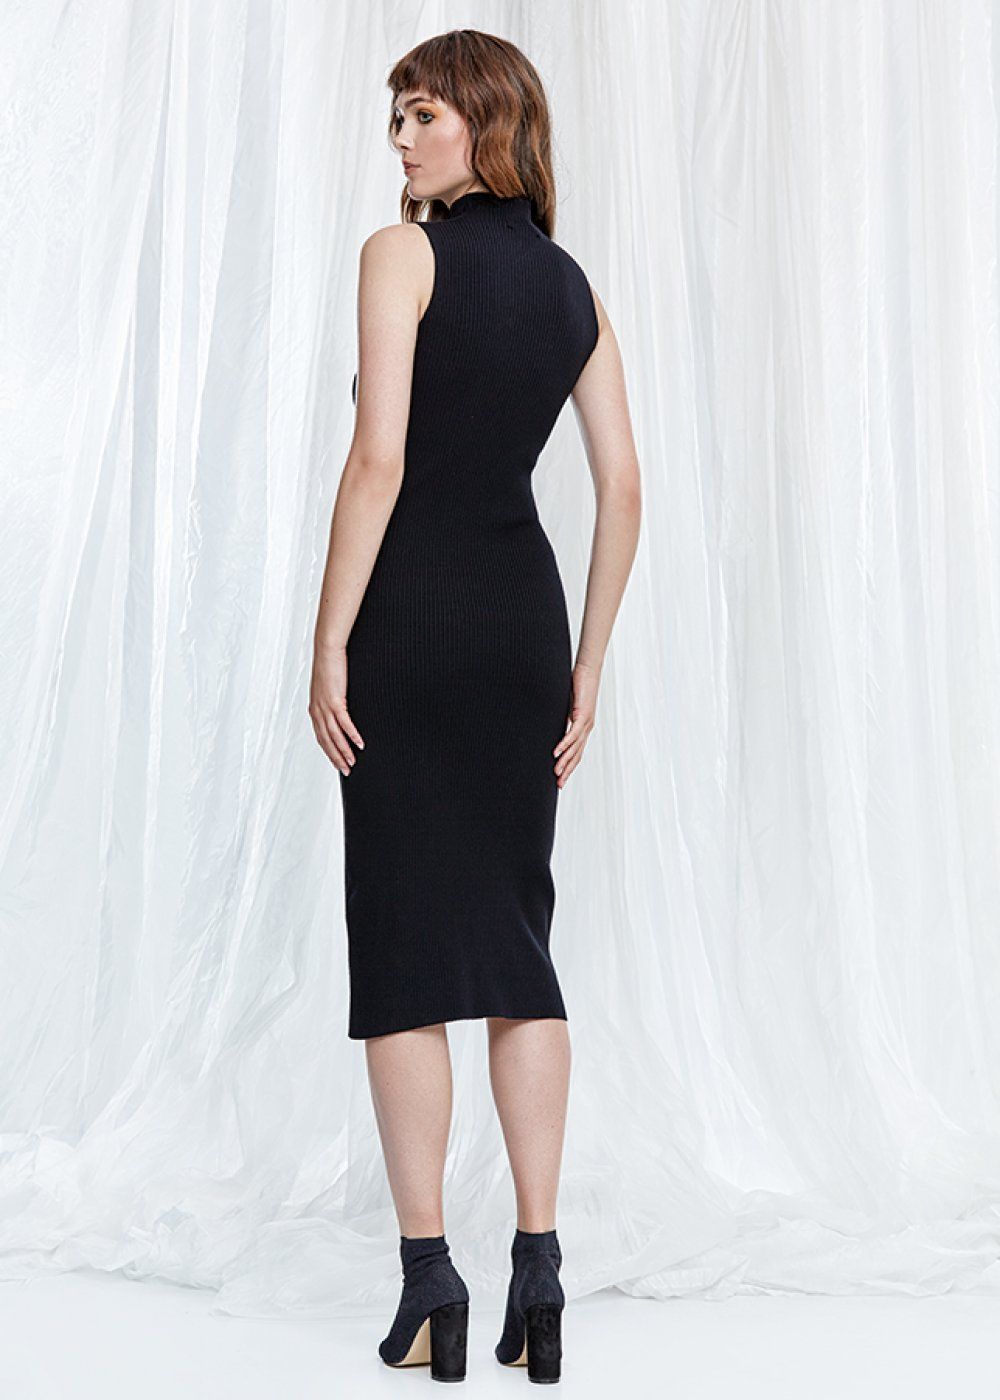 Sleeveless Black Midi Knit Dress